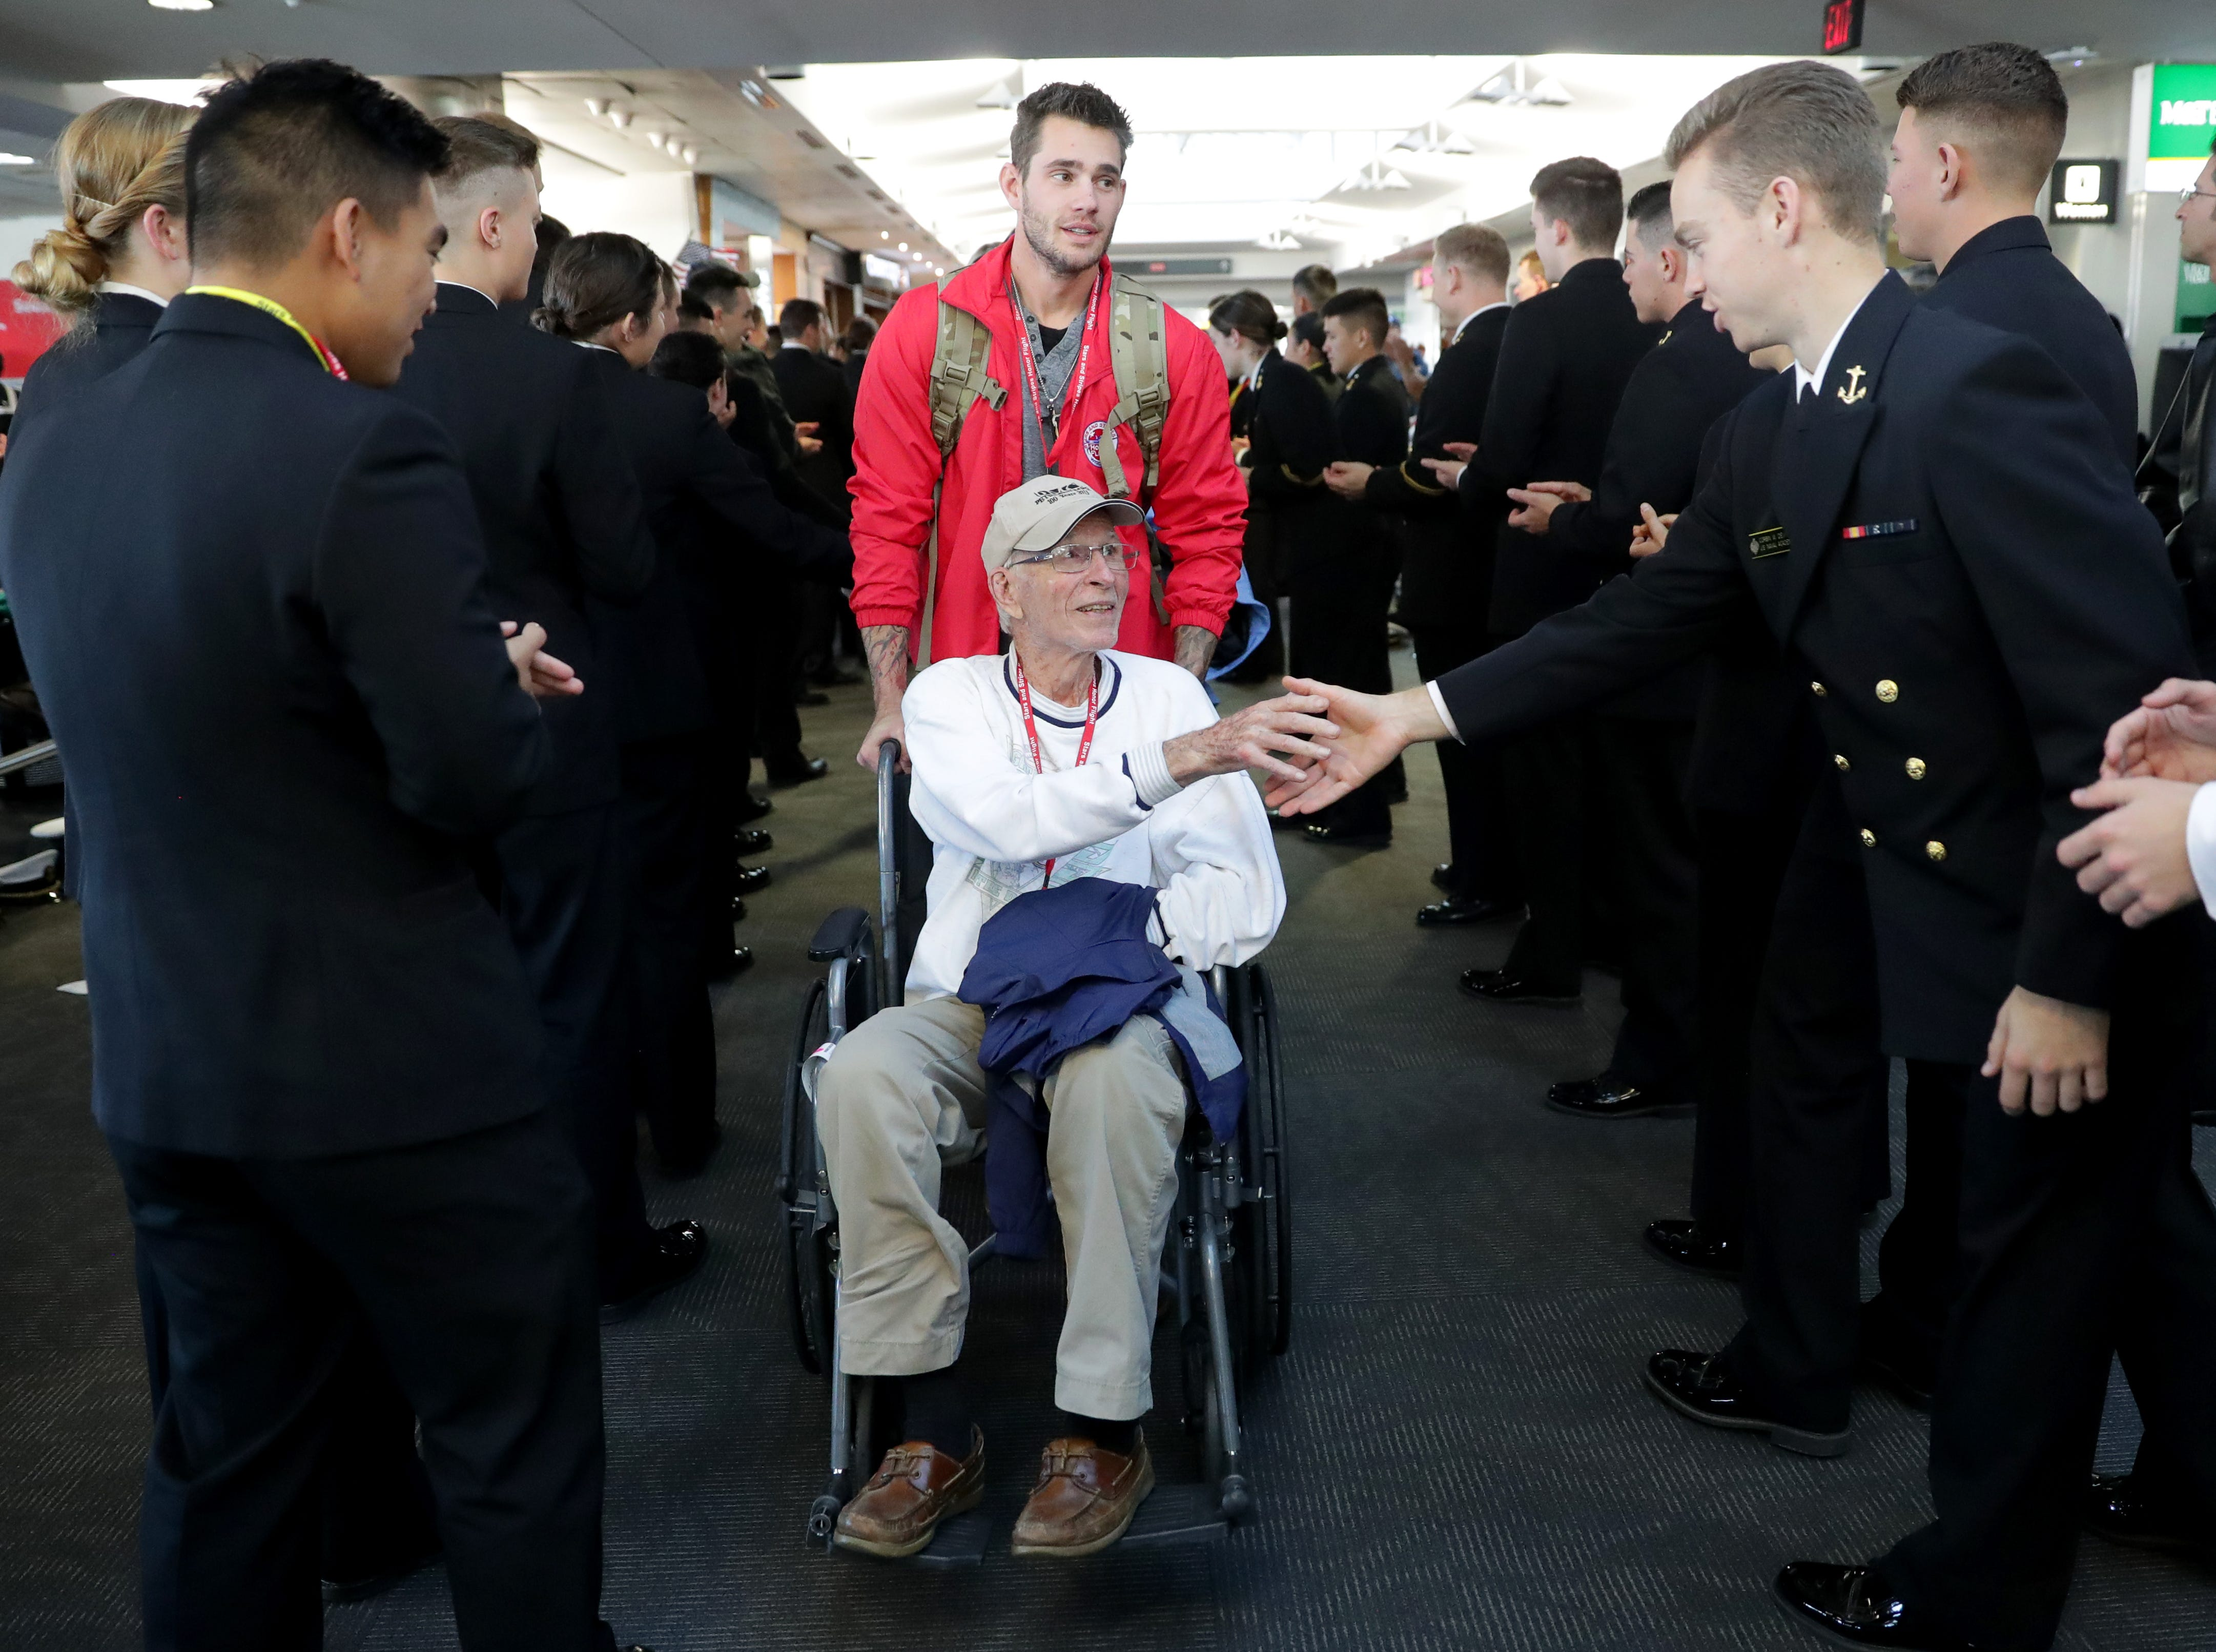 World War II Army veteran Ray Emery, 96, is greeted by midshipmen. Emery is with his grandson, Andrew Rehberg, who served two deployments in Afghanistan, 2010-'11 and 2012-'13, and in Kuwait, 2016-'17.